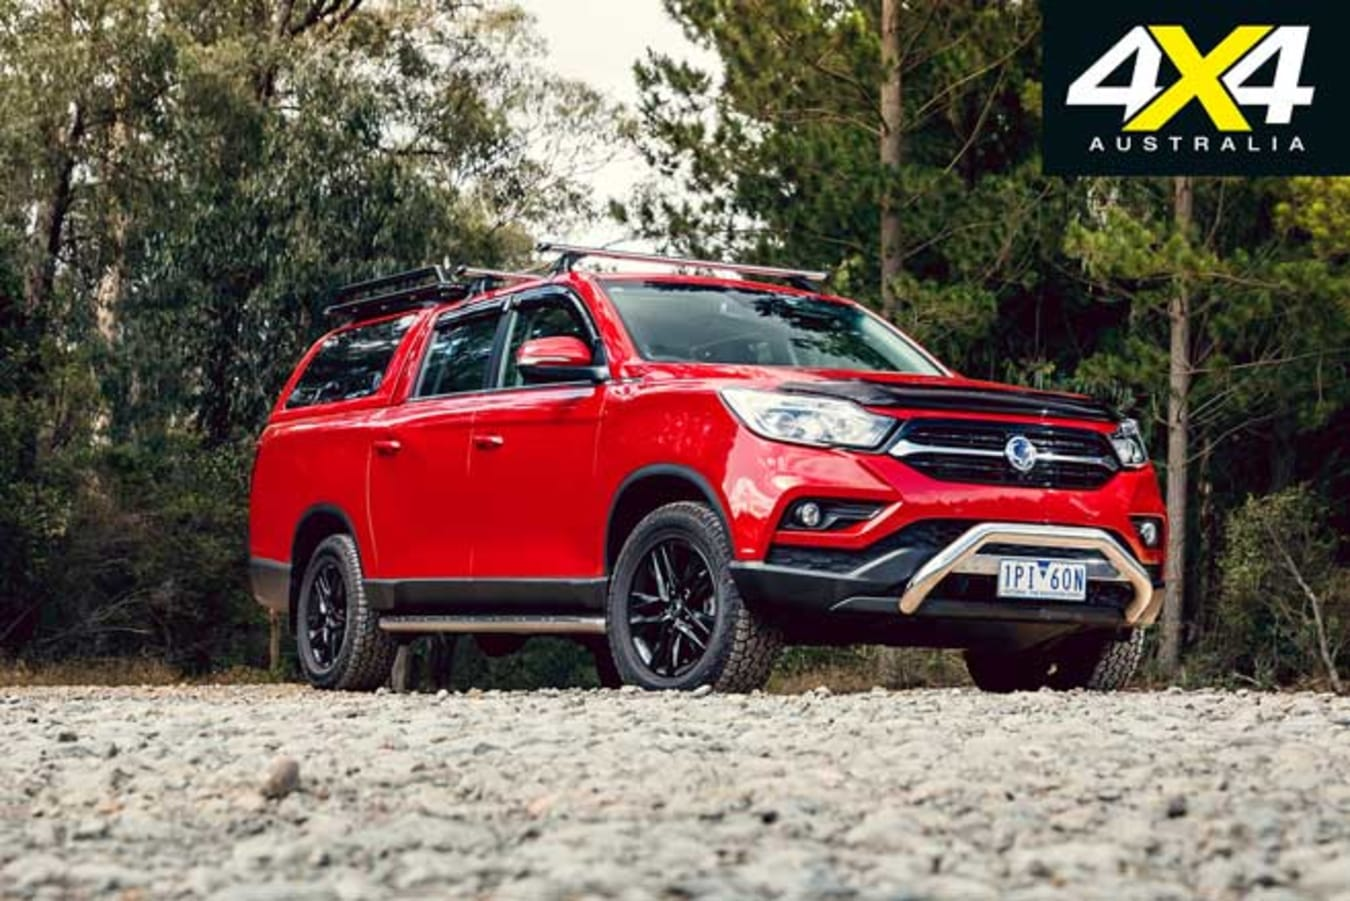 Ssangyong Musso XLV 4 X 4 Review Jpg